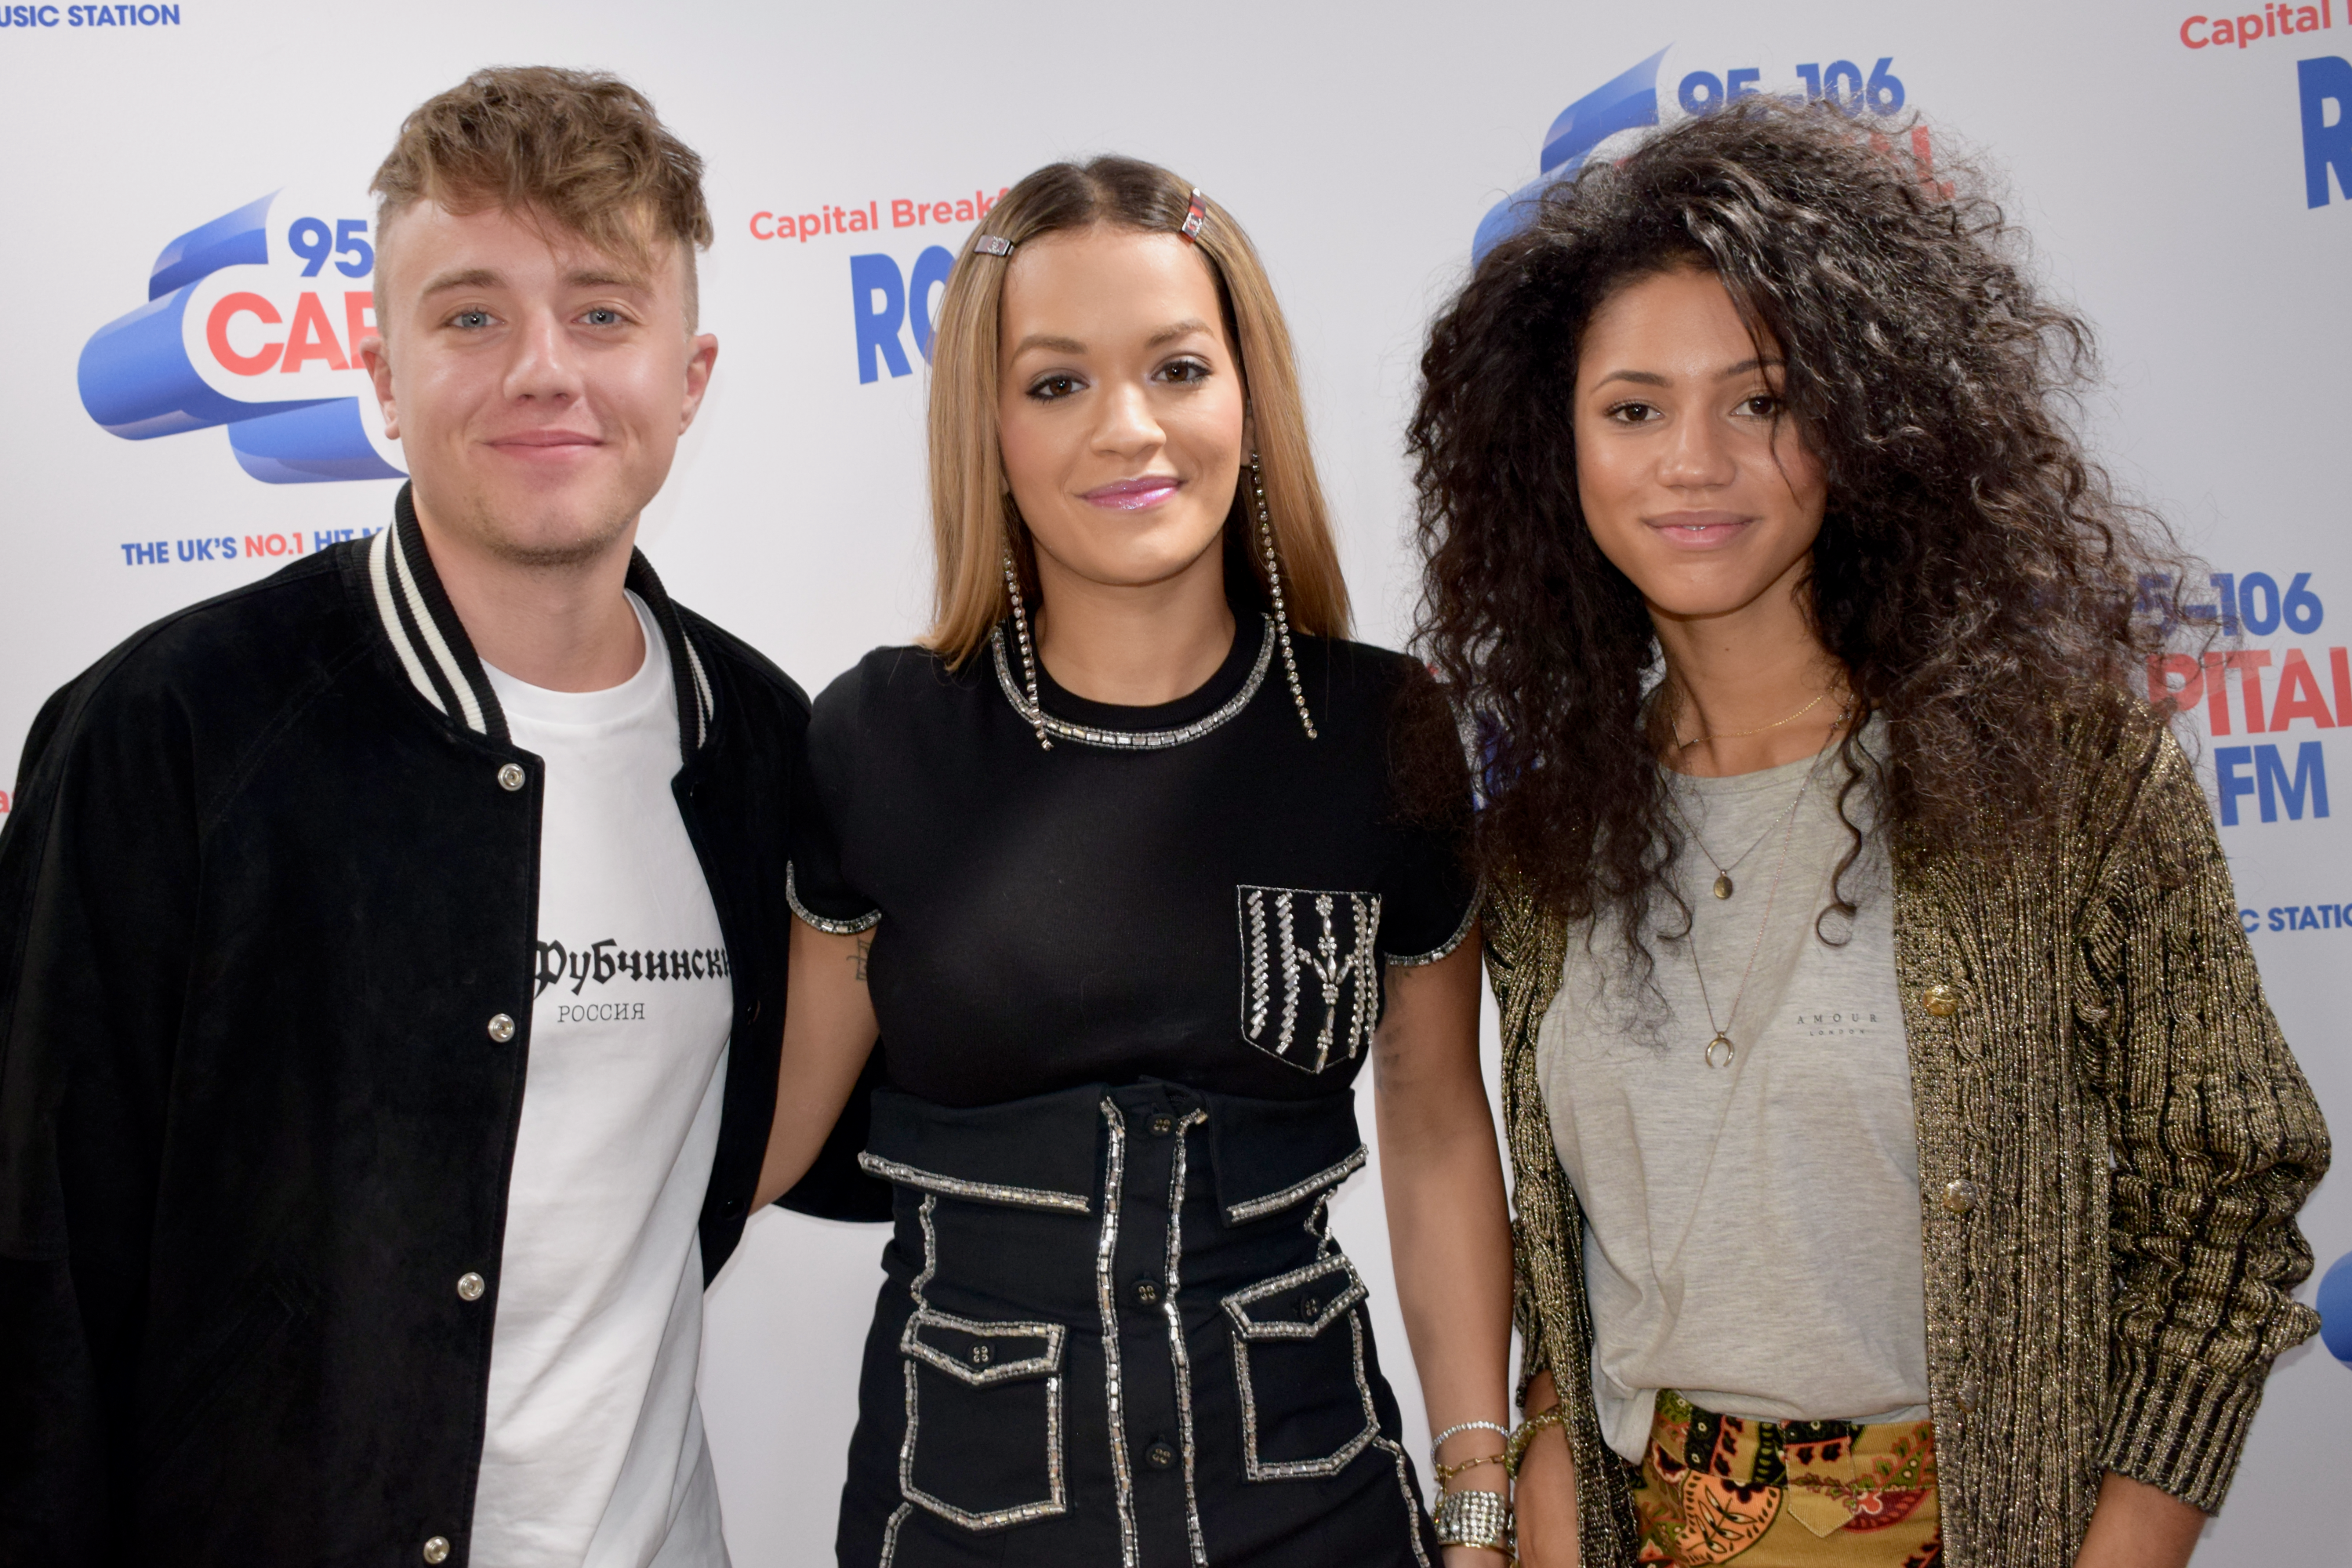 Rita Ora Capital Breakfast w/ Roman Kemp and Vick